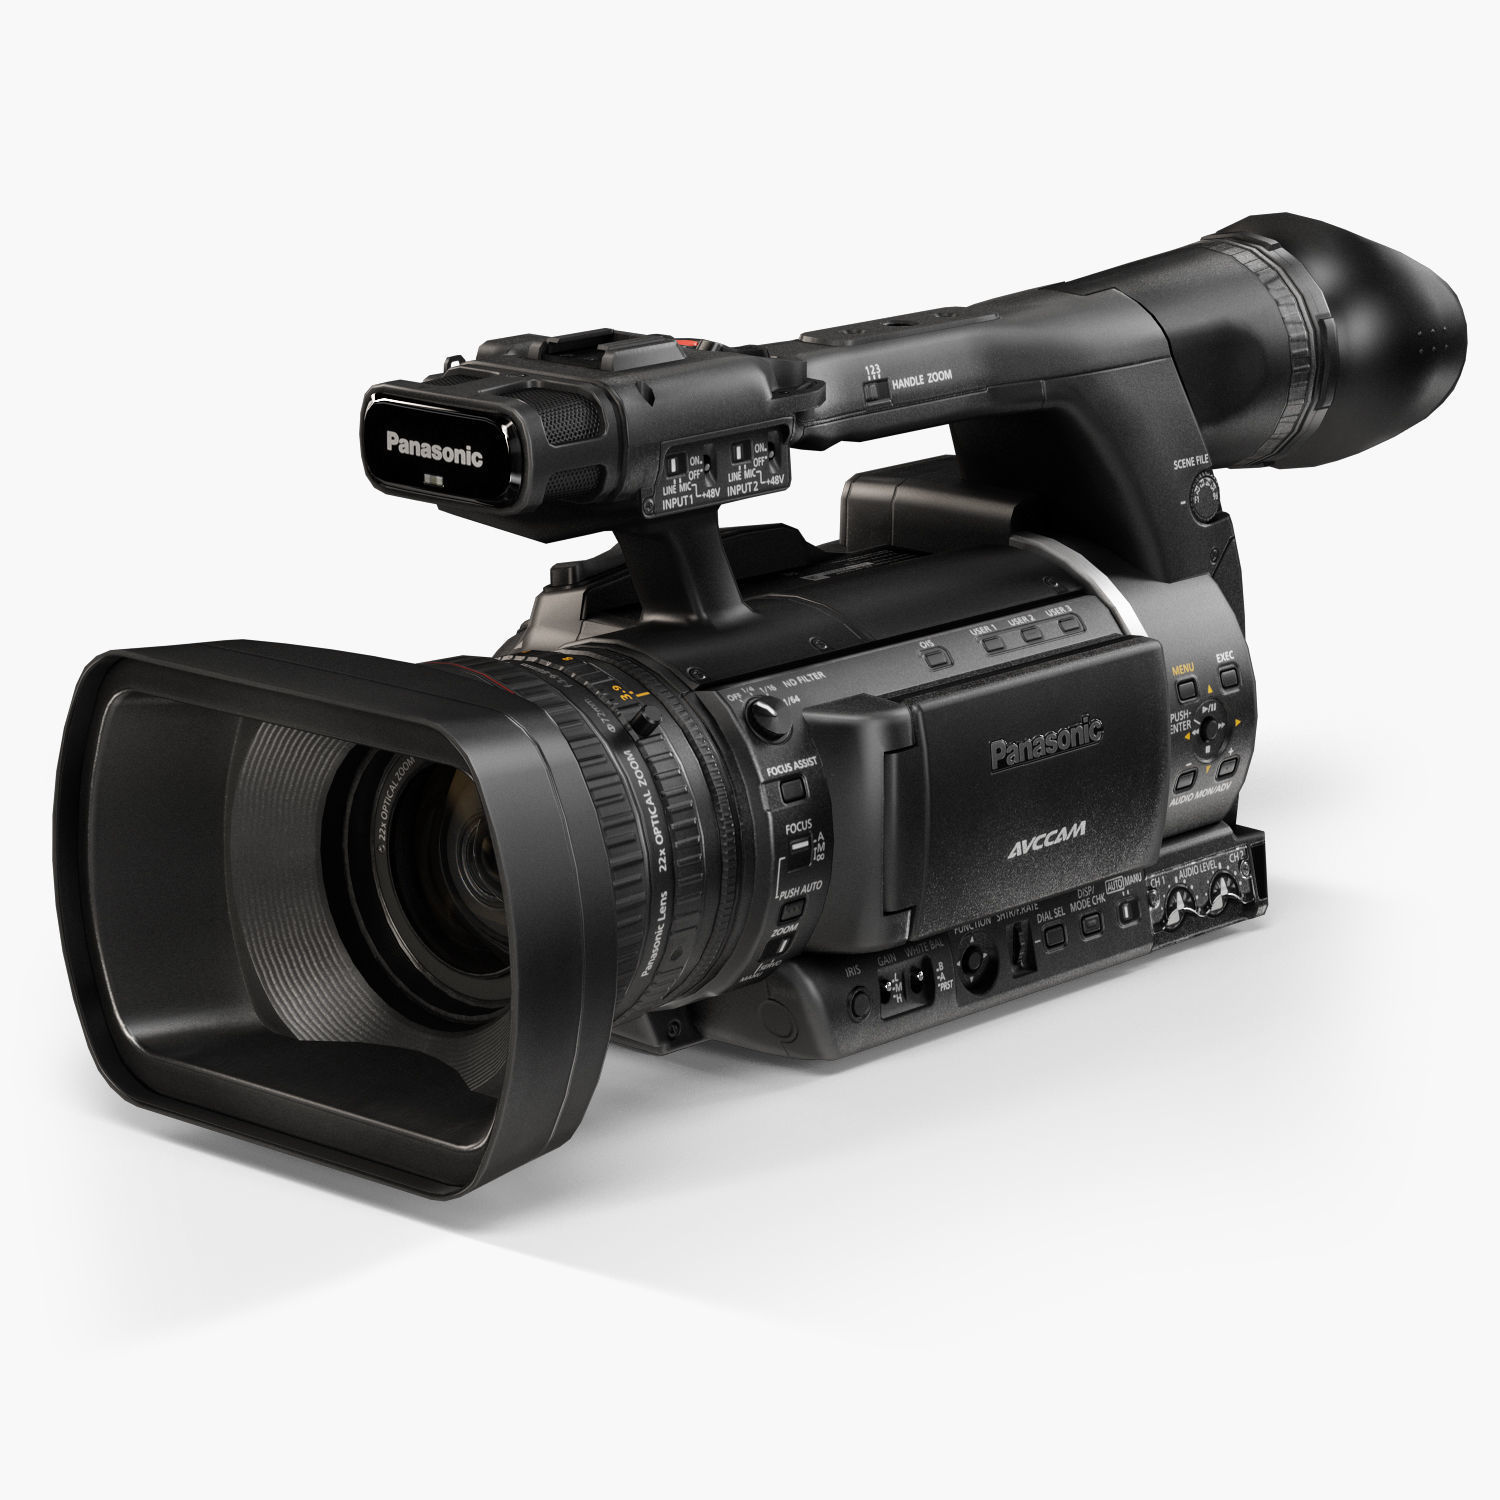 Panasonic AG-AC160A AVCCAM Series professional camcorder